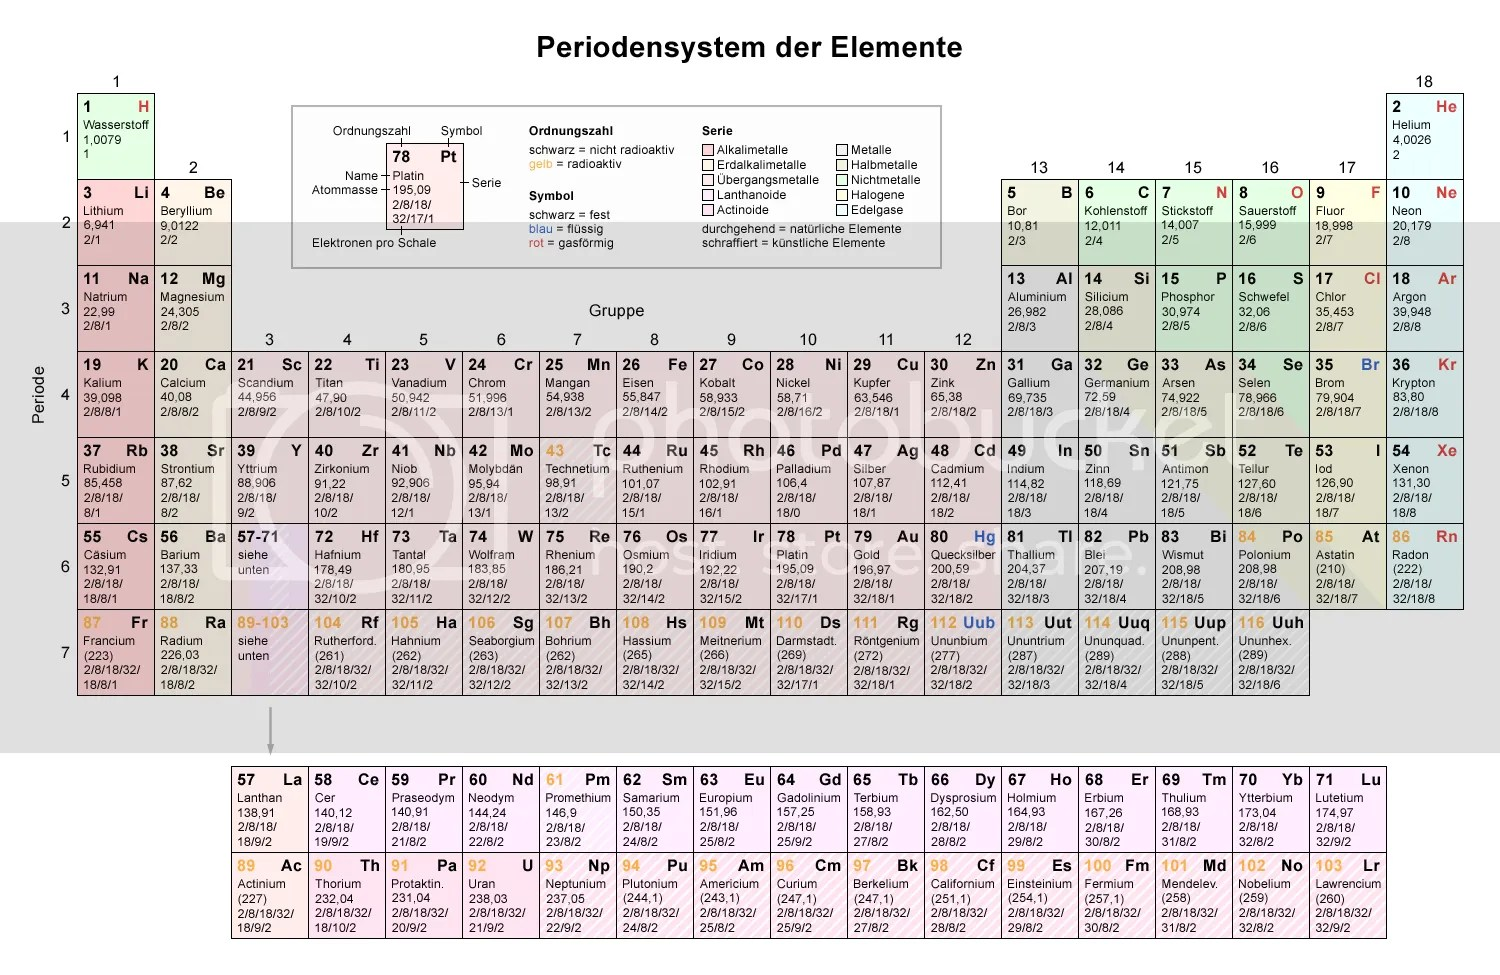 periodic elements diagram 1995 ford ranger wiper wiring periodensystem photo by isso01 photobucket